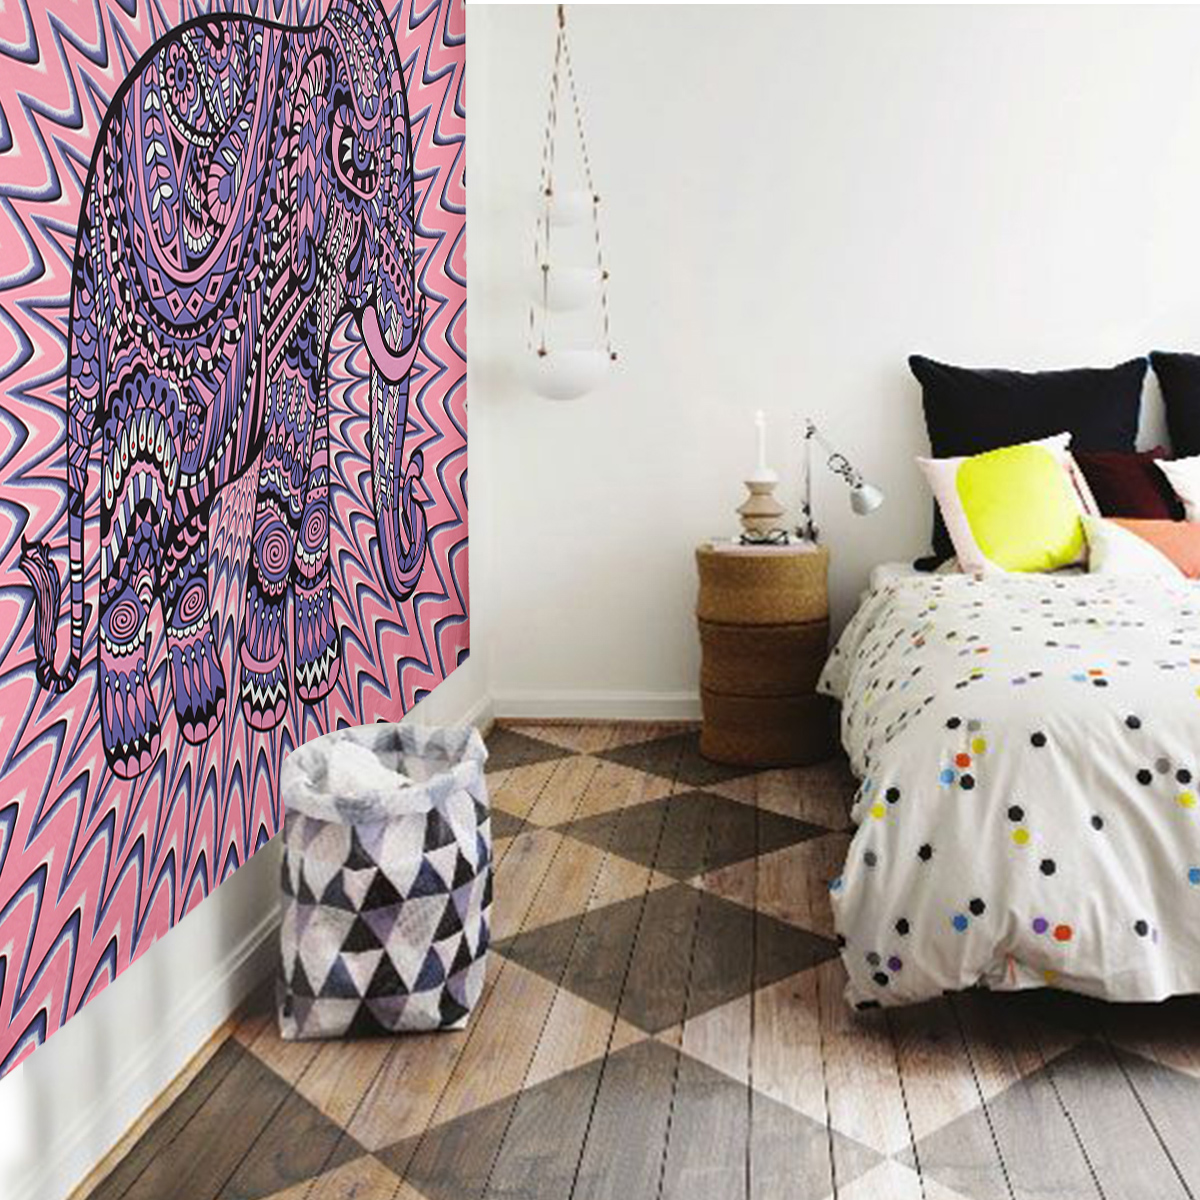 Elephant Mandala Tapestry Throw Towel Hippie Tapestry Floral Printed Home Decor Wall Tapestries Bedspread 210*150CM 18